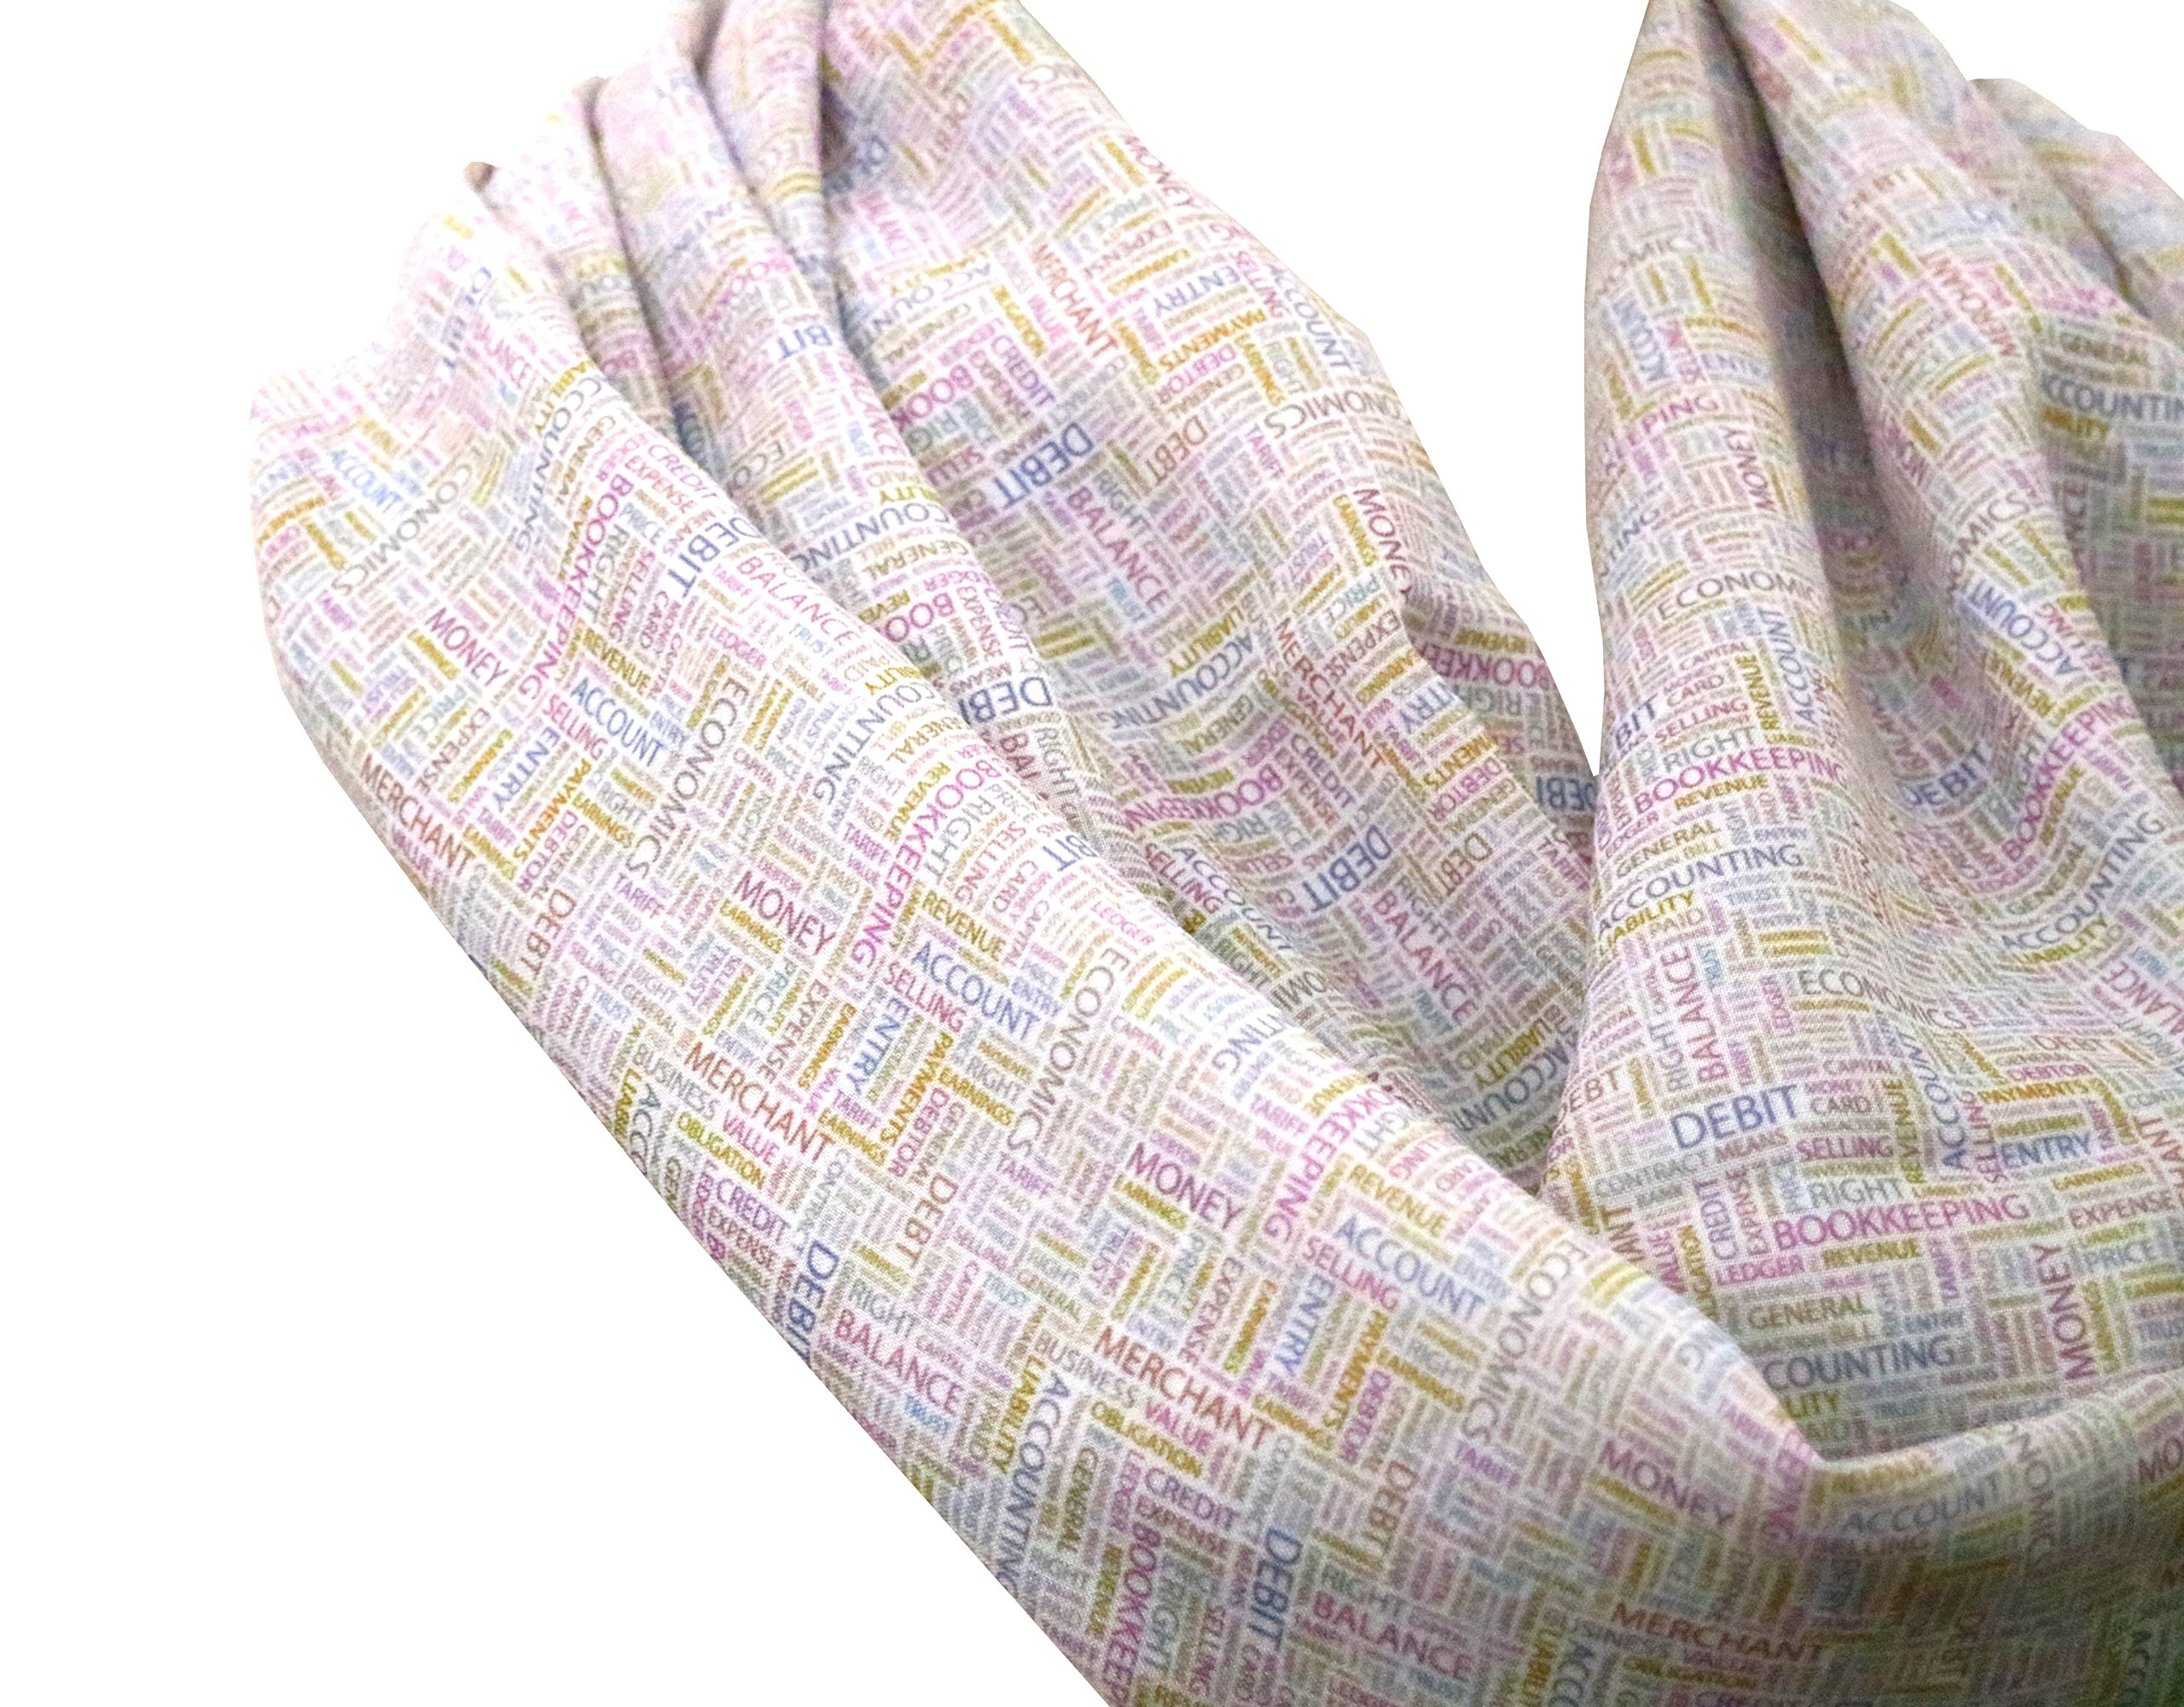 Handmade Accounting and finance scarf, for CPAs, Accountants, and Finance professionals. Birthday Gift for her for, gift idea for her - White